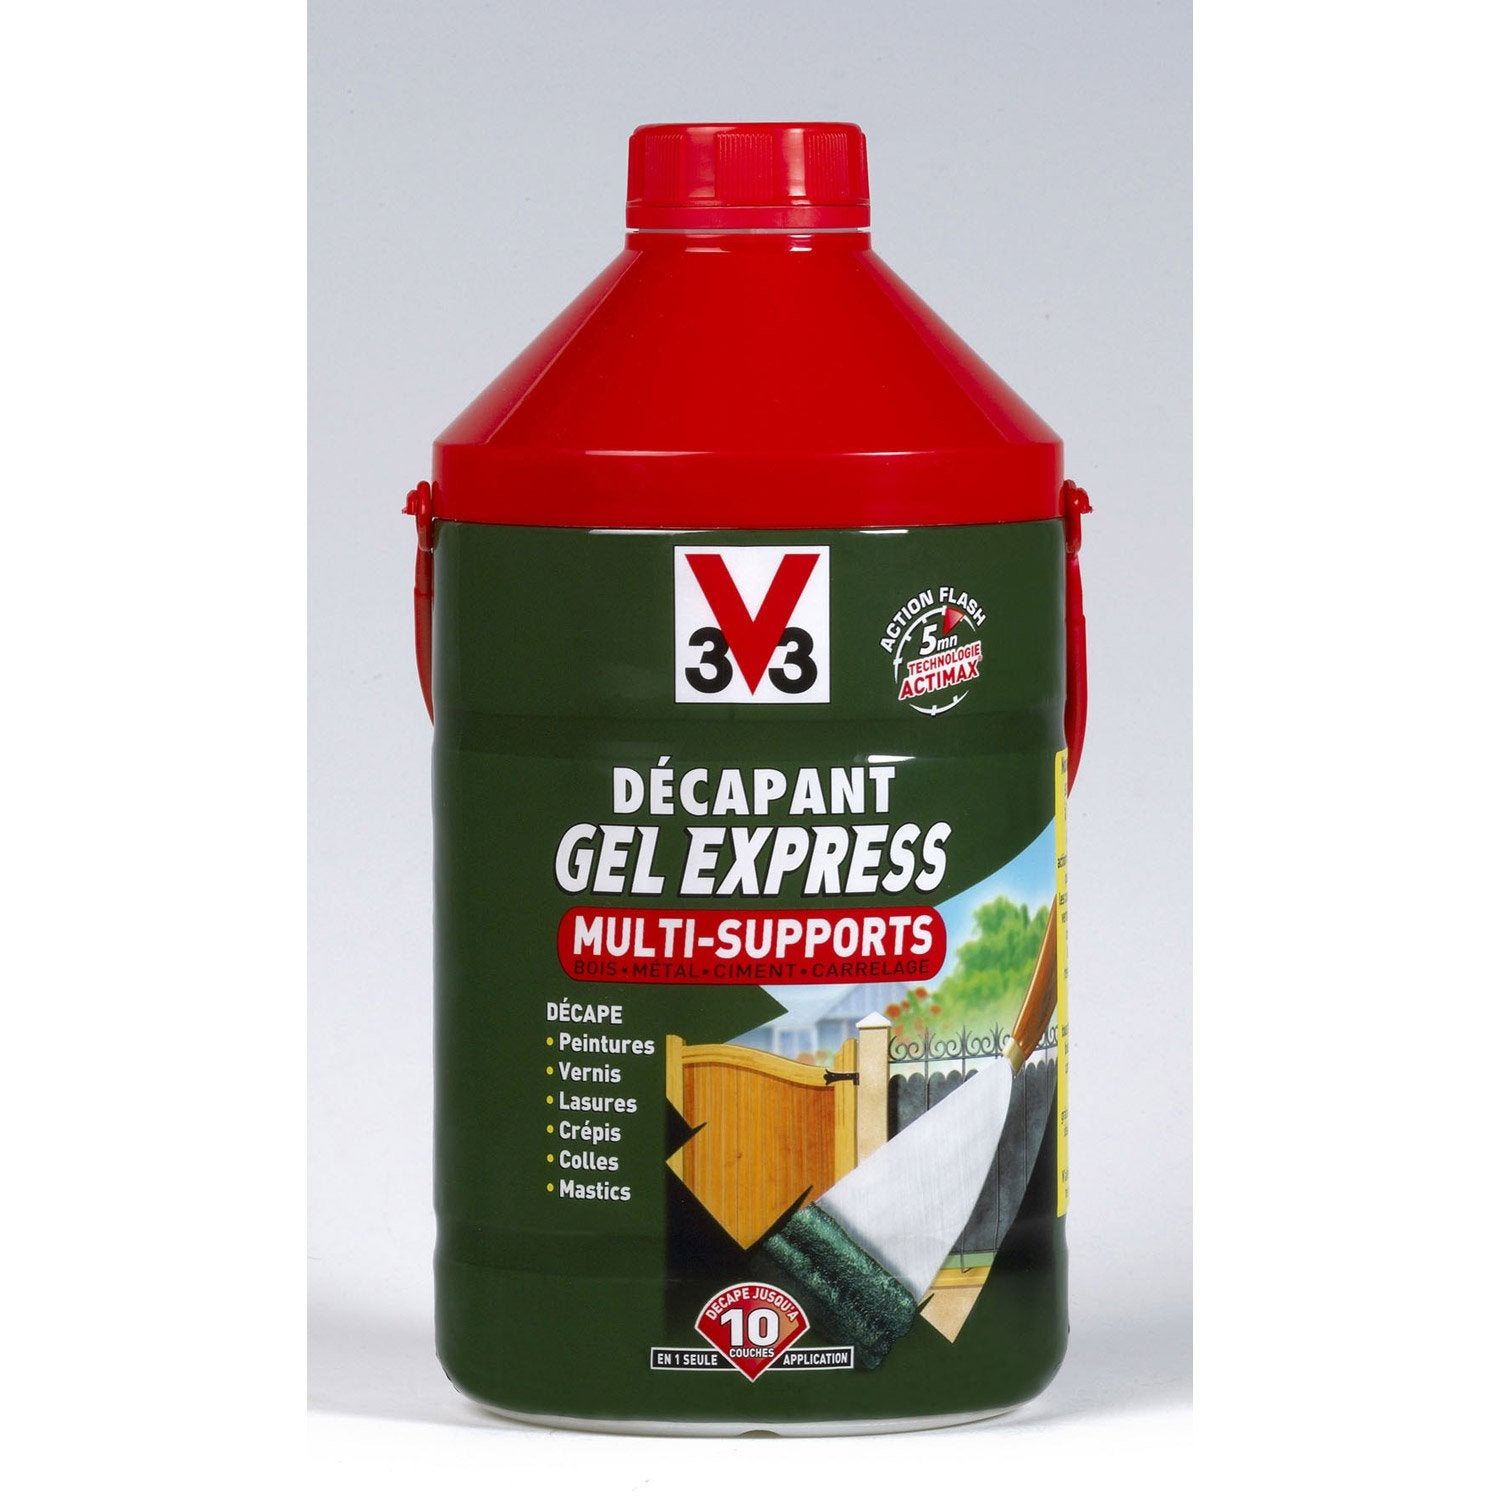 D capant multisupport v33 gel express 2 l leroy merlin for Peinture bio leroy merlin